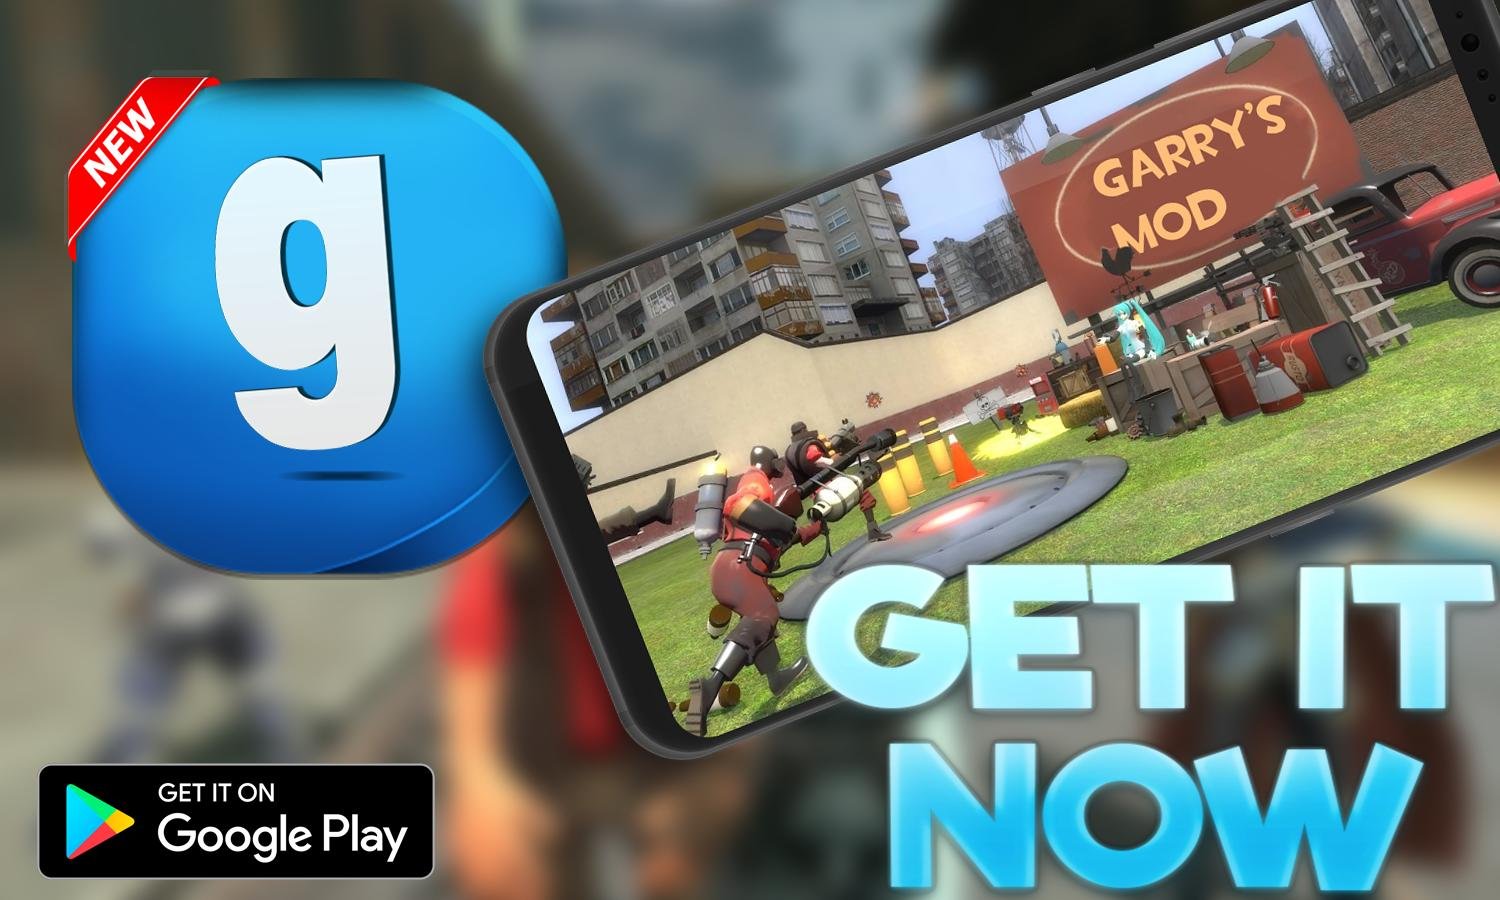 Guide For Garry S Mod 2018 For Android Apk Download